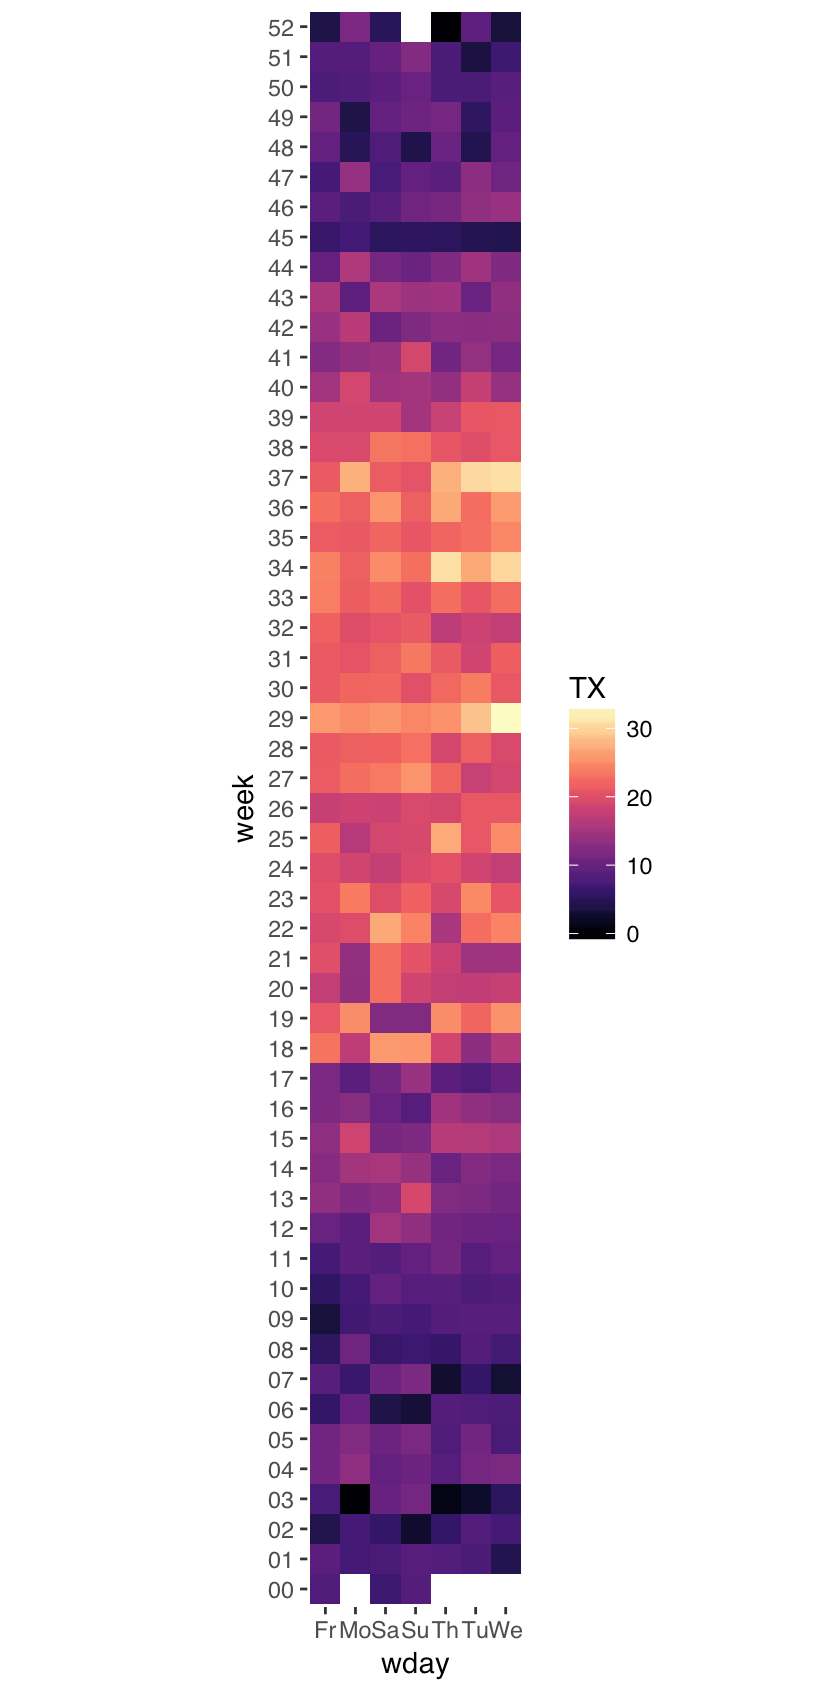 Visualising temperatures in Amsterdam as a heatmap in R — Part II